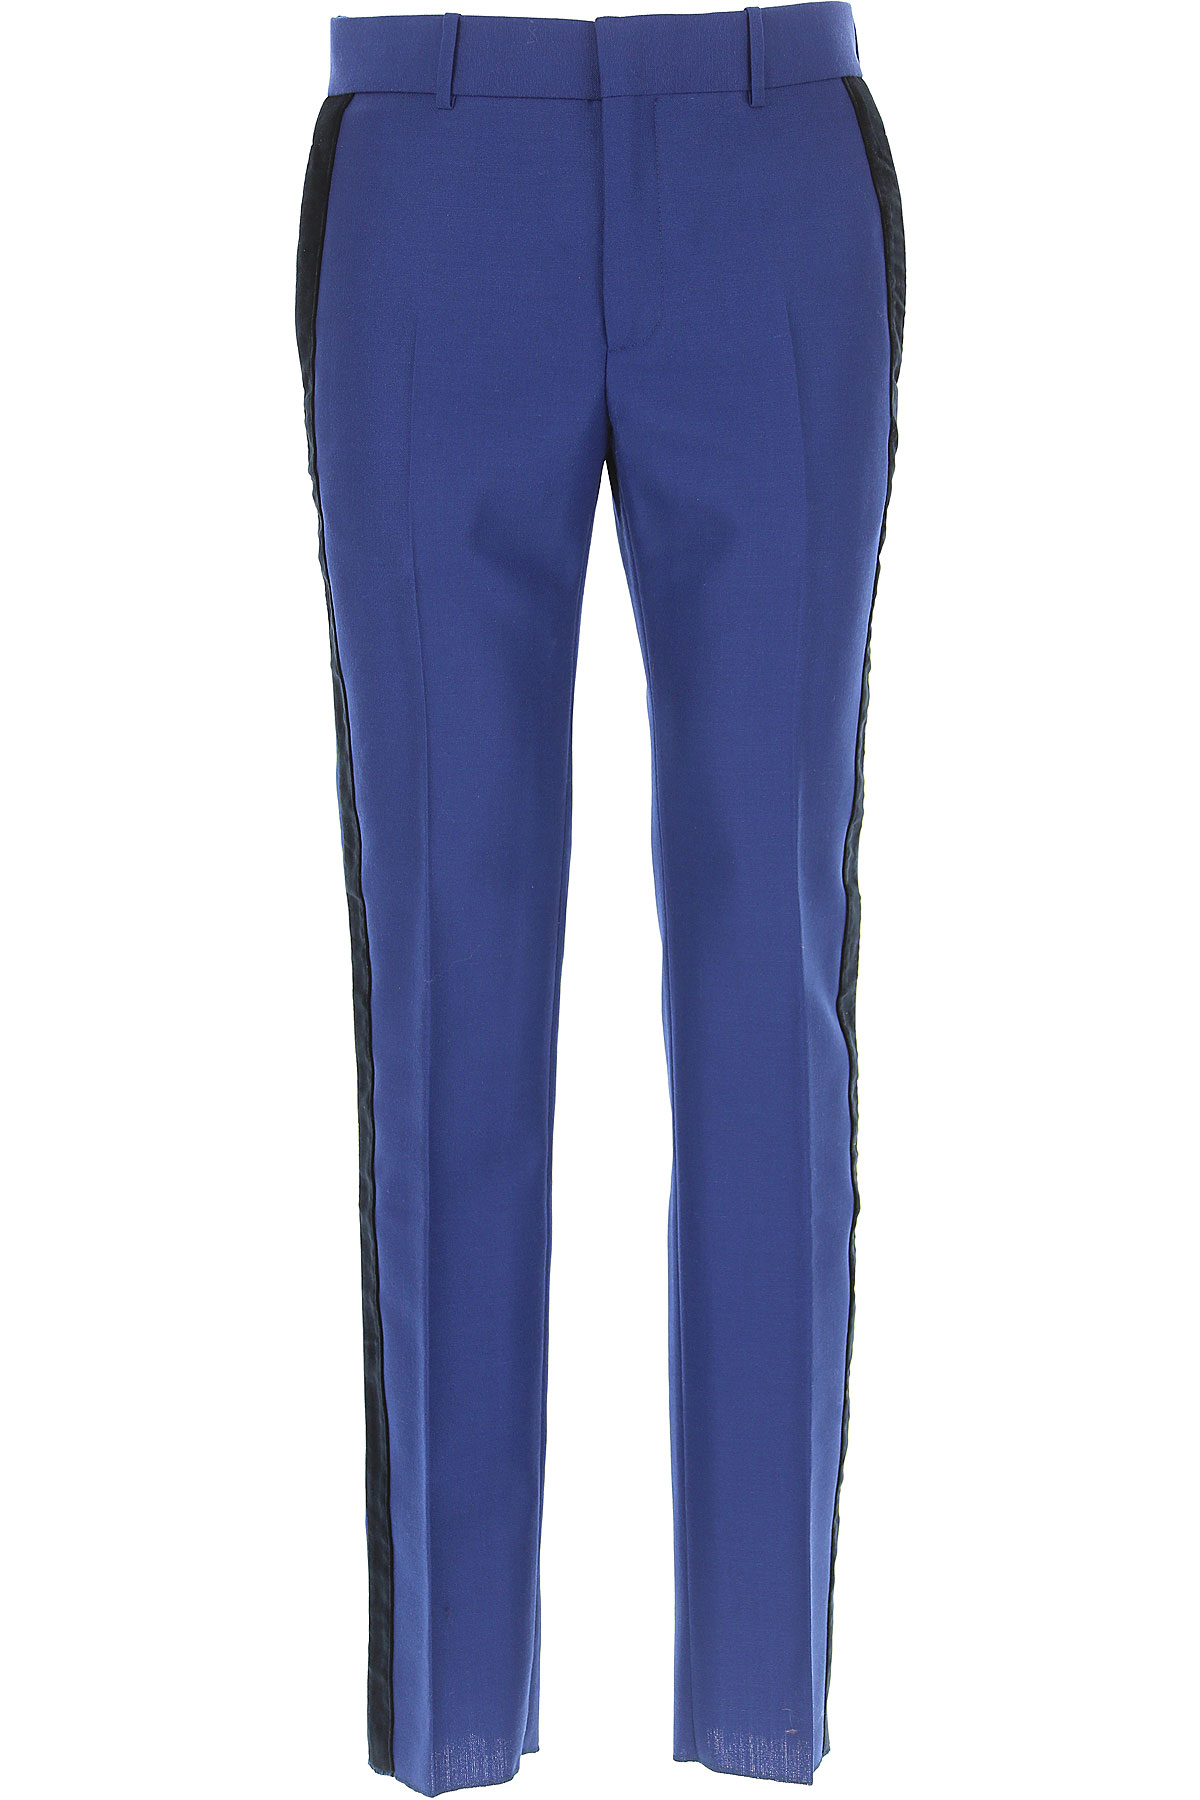 Alexander McQueen Pants for Men On Sale in Outlet, Blue, Wool, 2019, 32 34